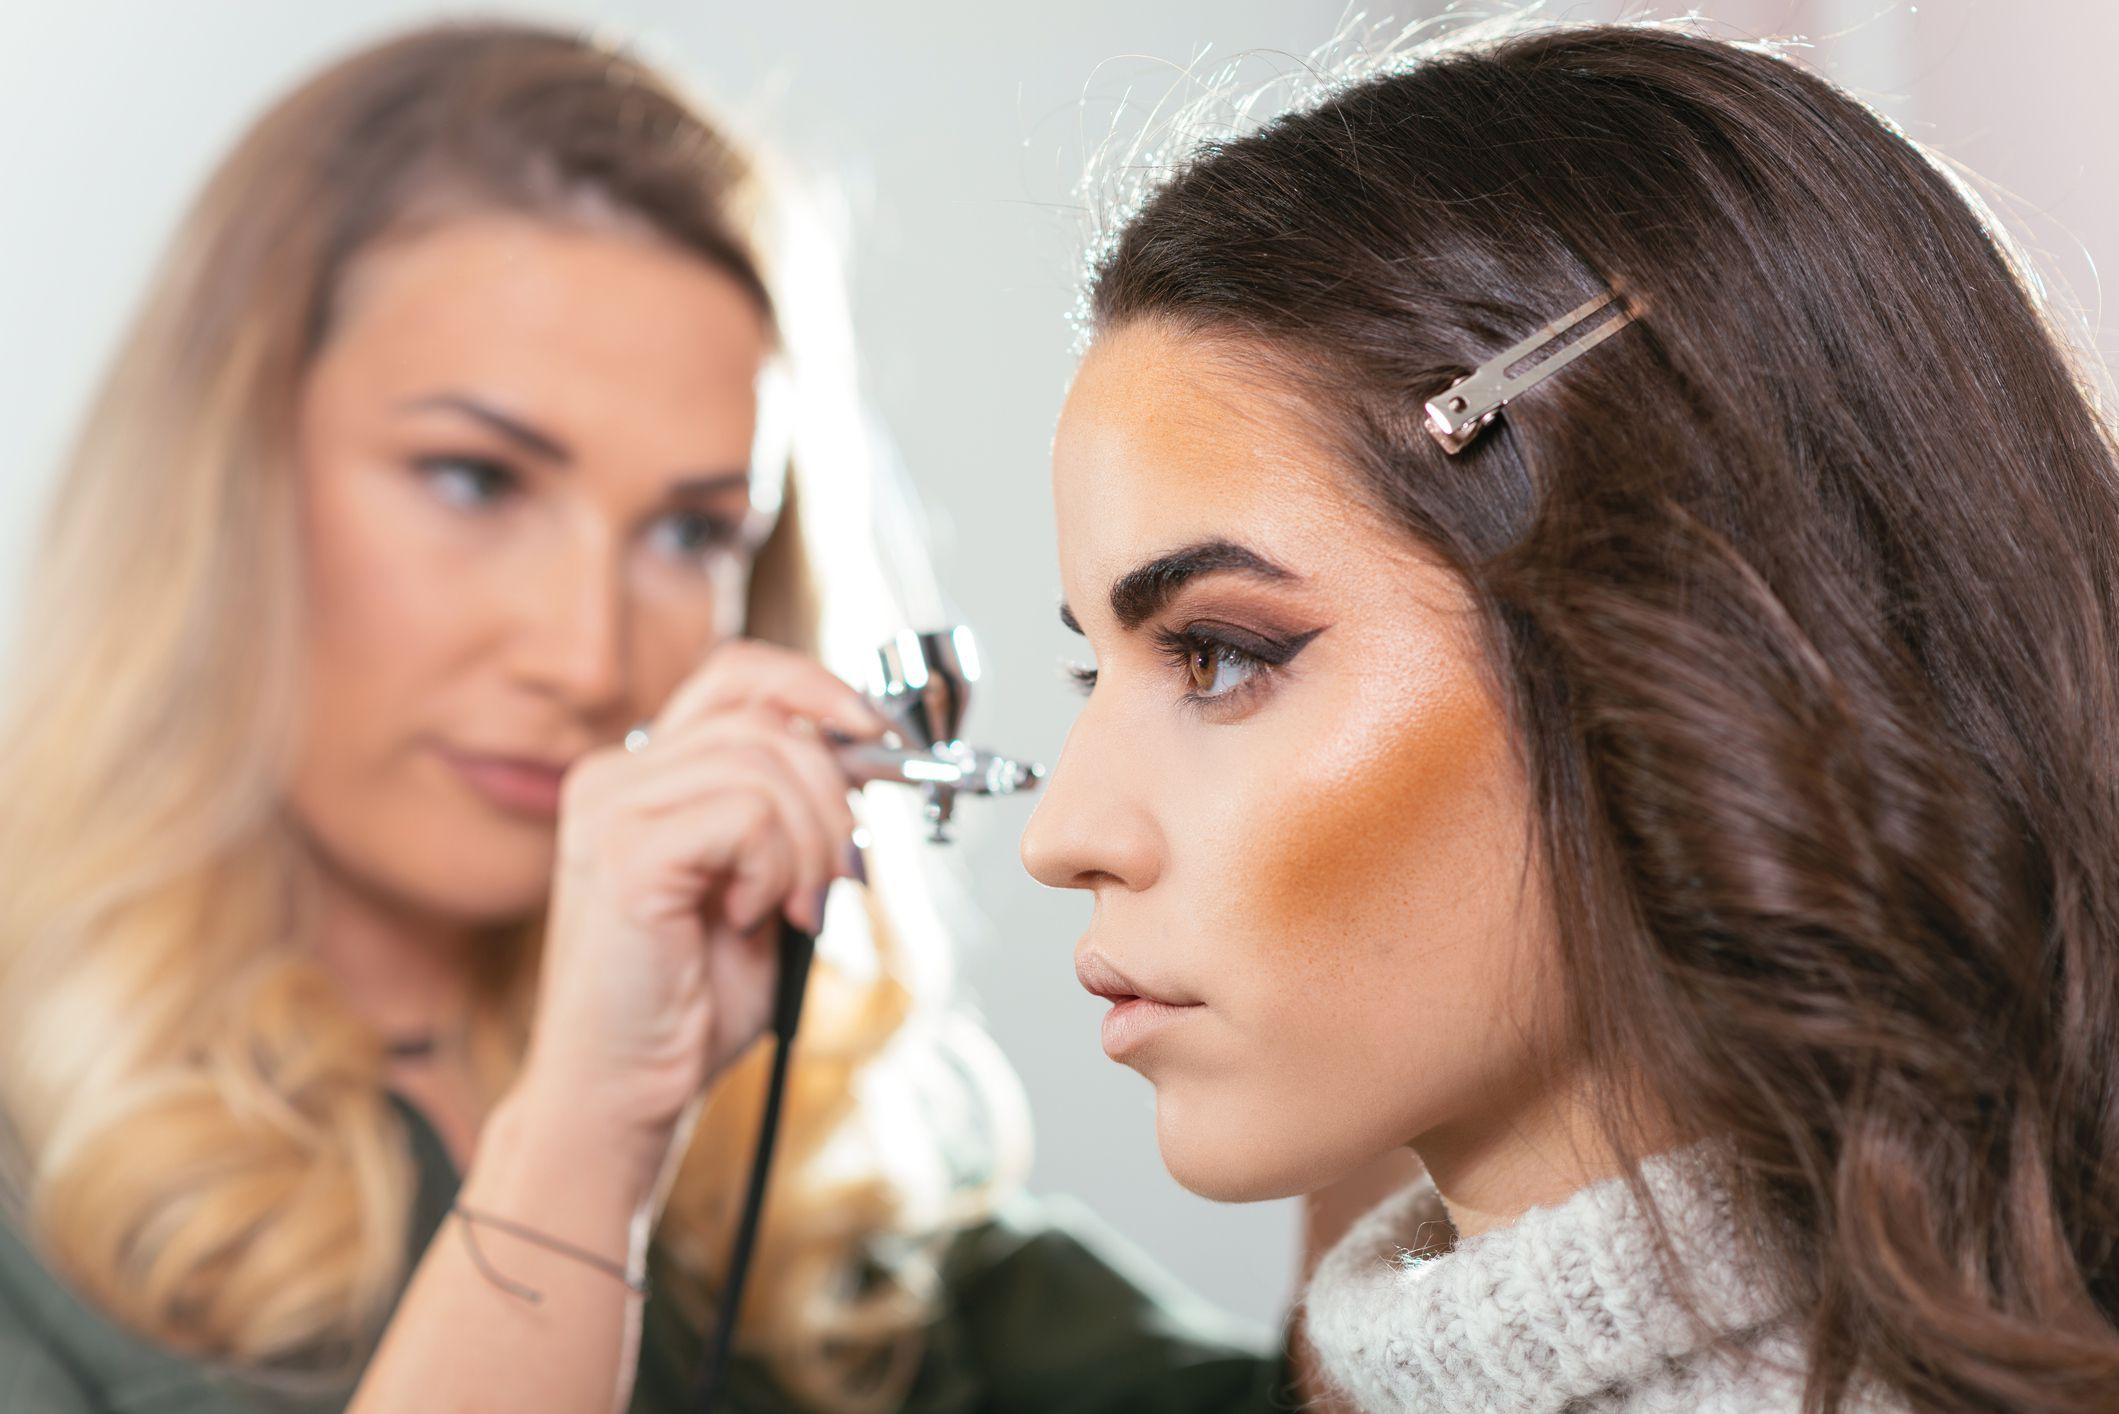 The Best Airbrush Makeup for When You Want Seriously